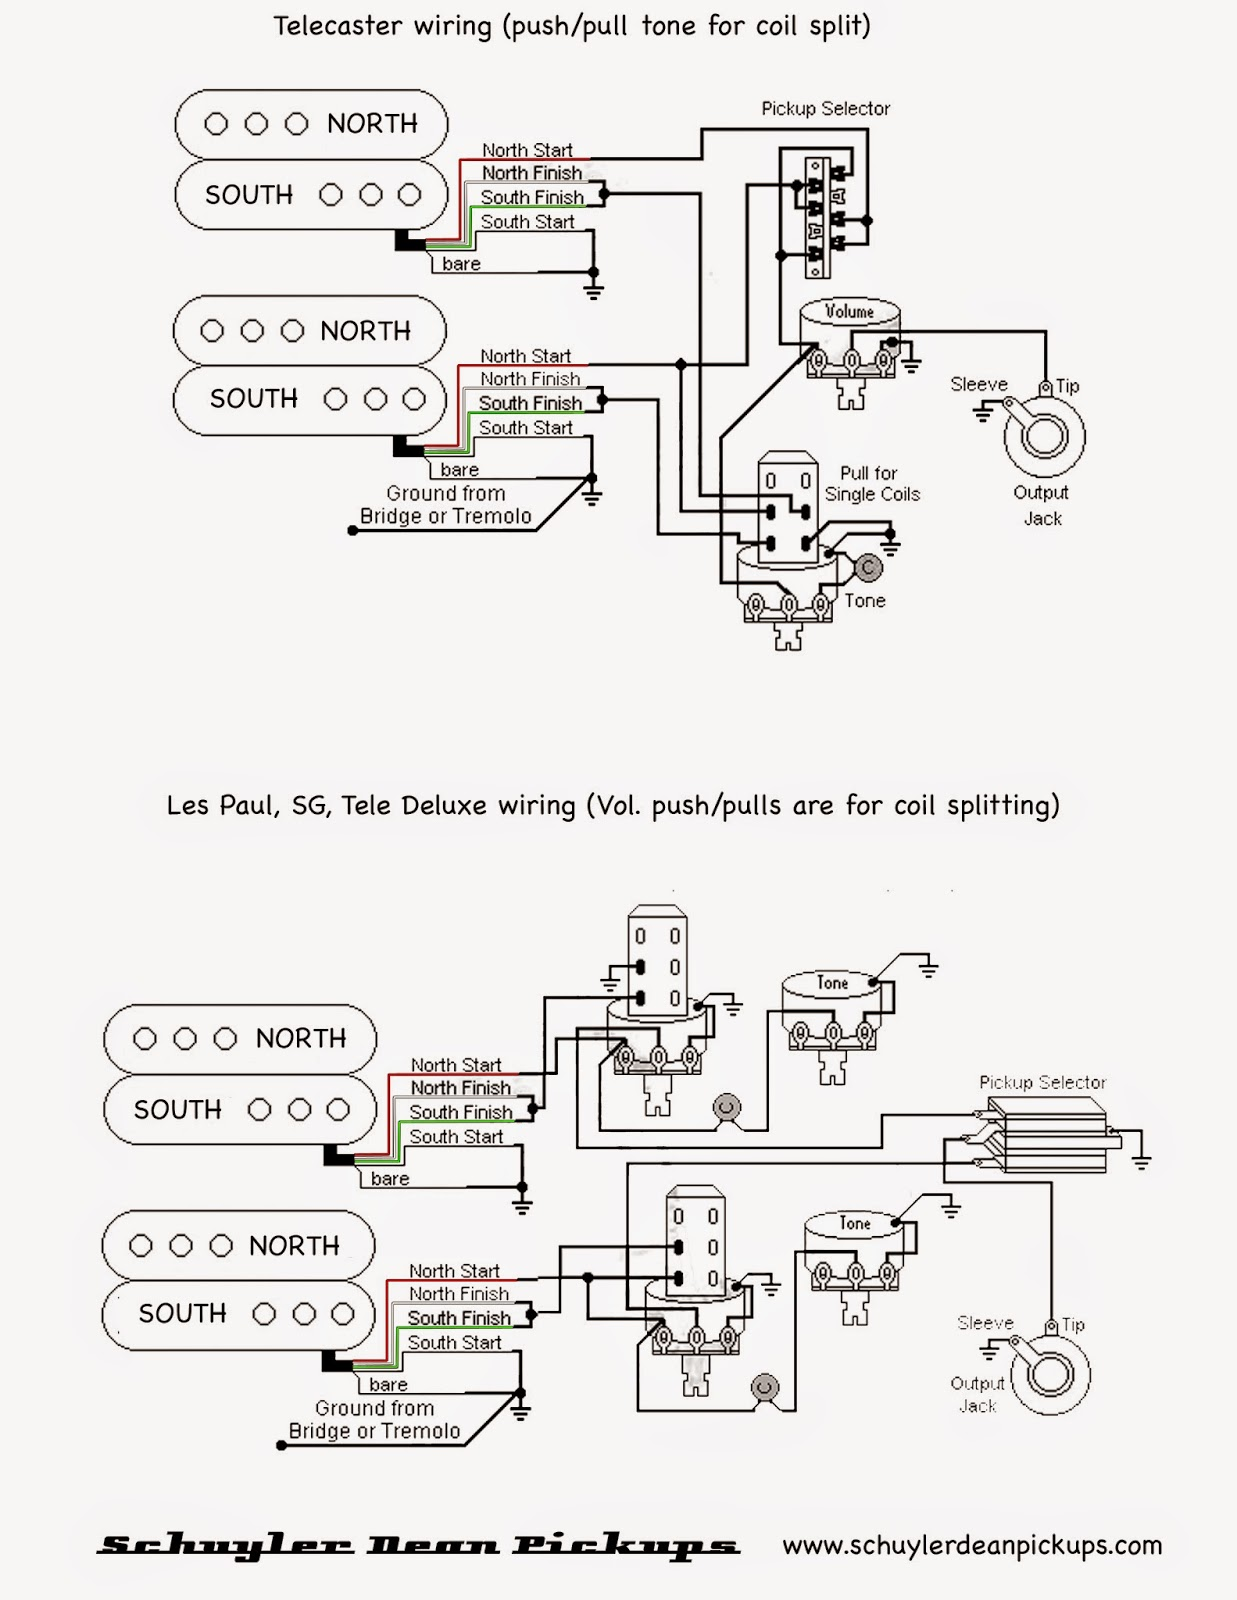 Wiring%2Bdiagram%2BTele LP schuyler dean pickups 2014 coil split wiring diagram at reclaimingppi.co